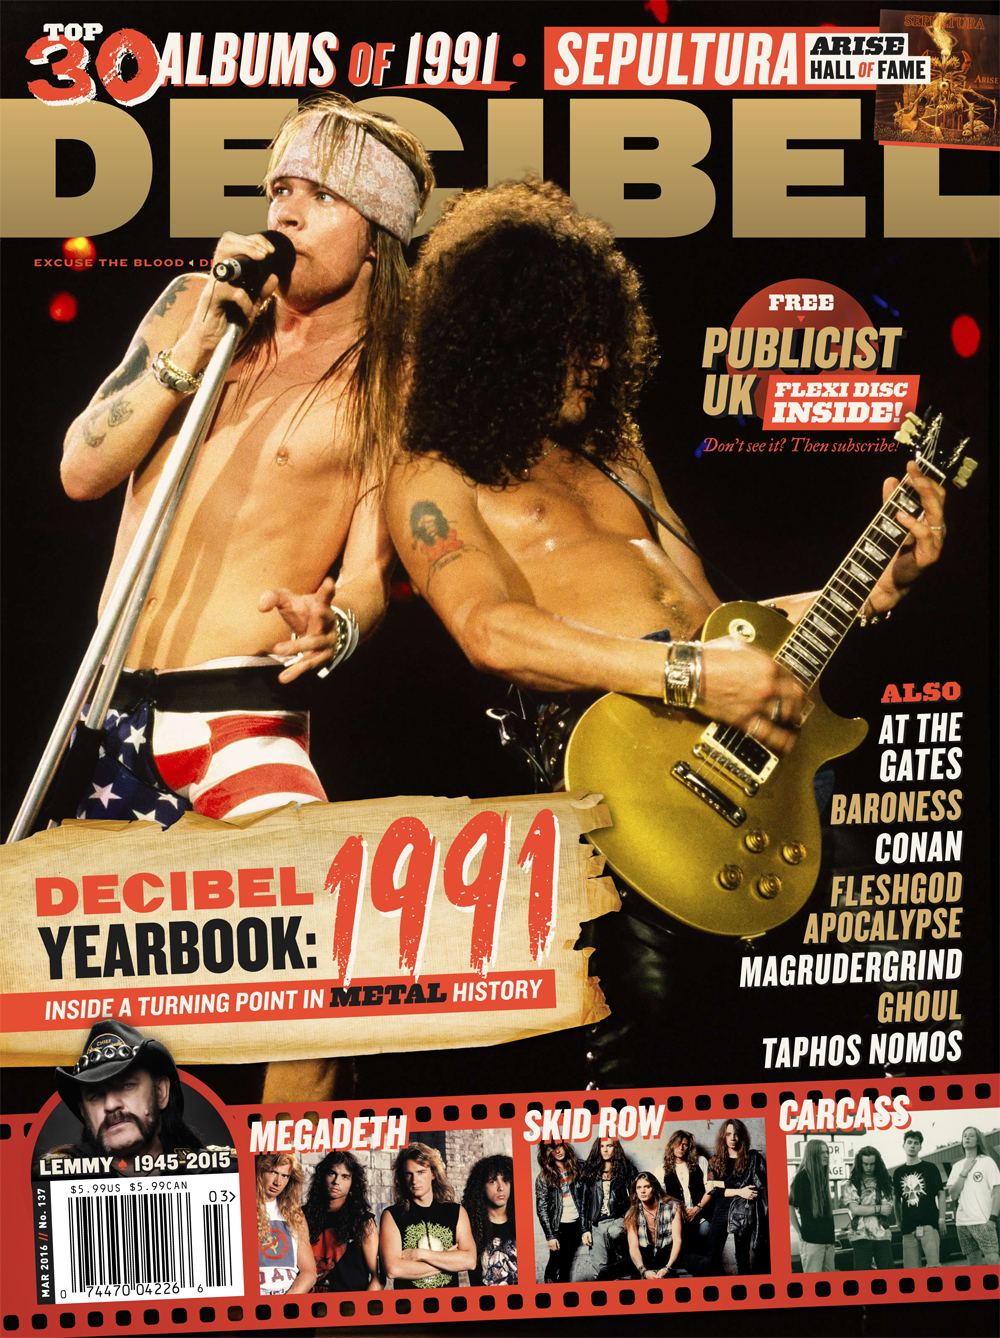 Decibel #137 - March 2016 - Decibel Yearbook: 1991